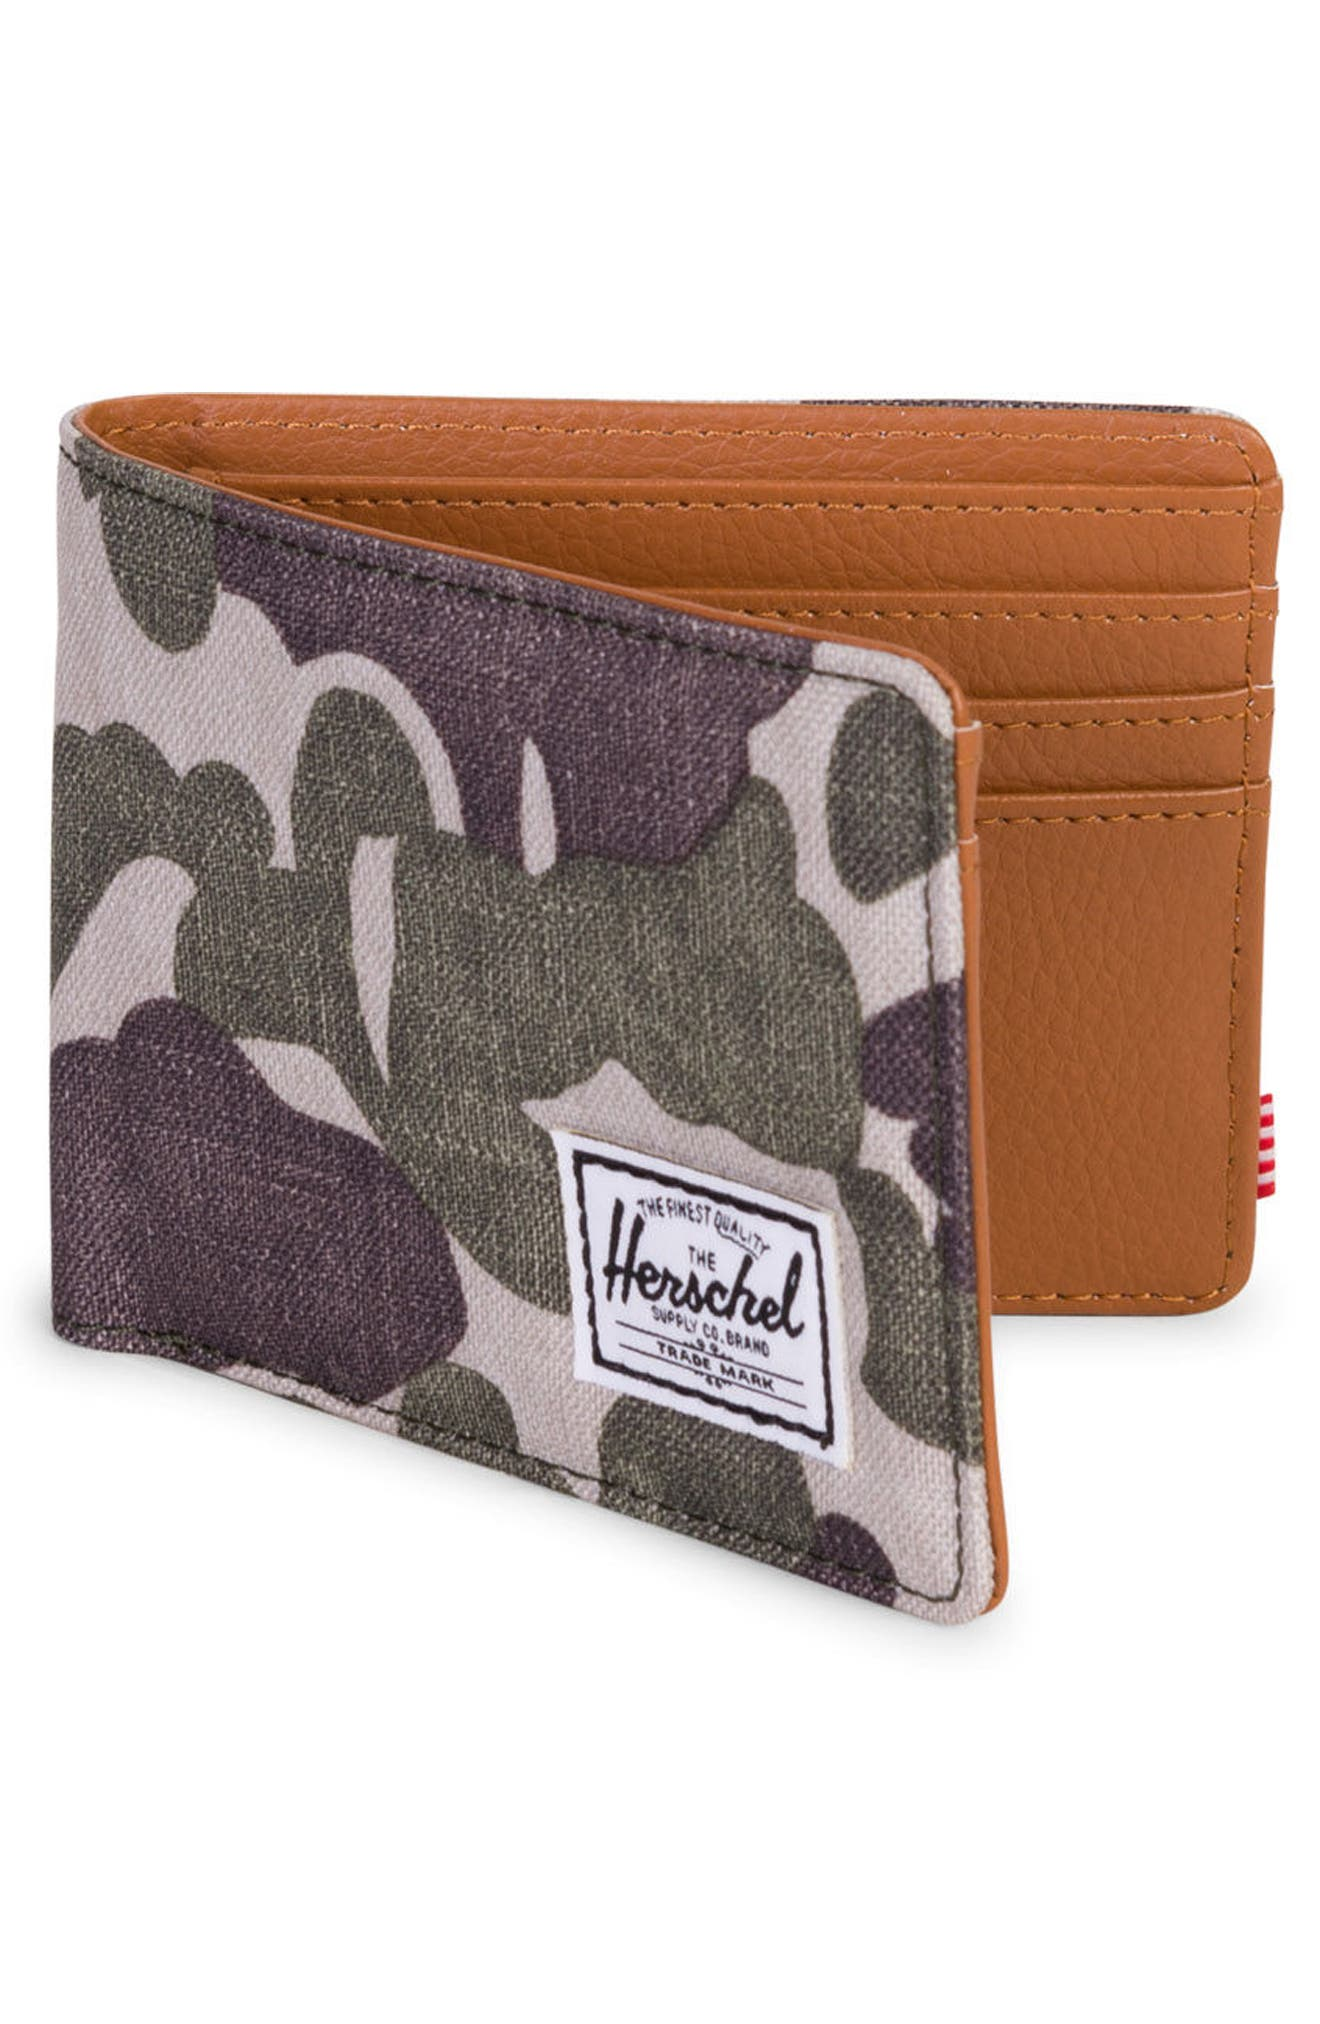 Hank Wallet,                             Alternate thumbnail 3, color,                             310